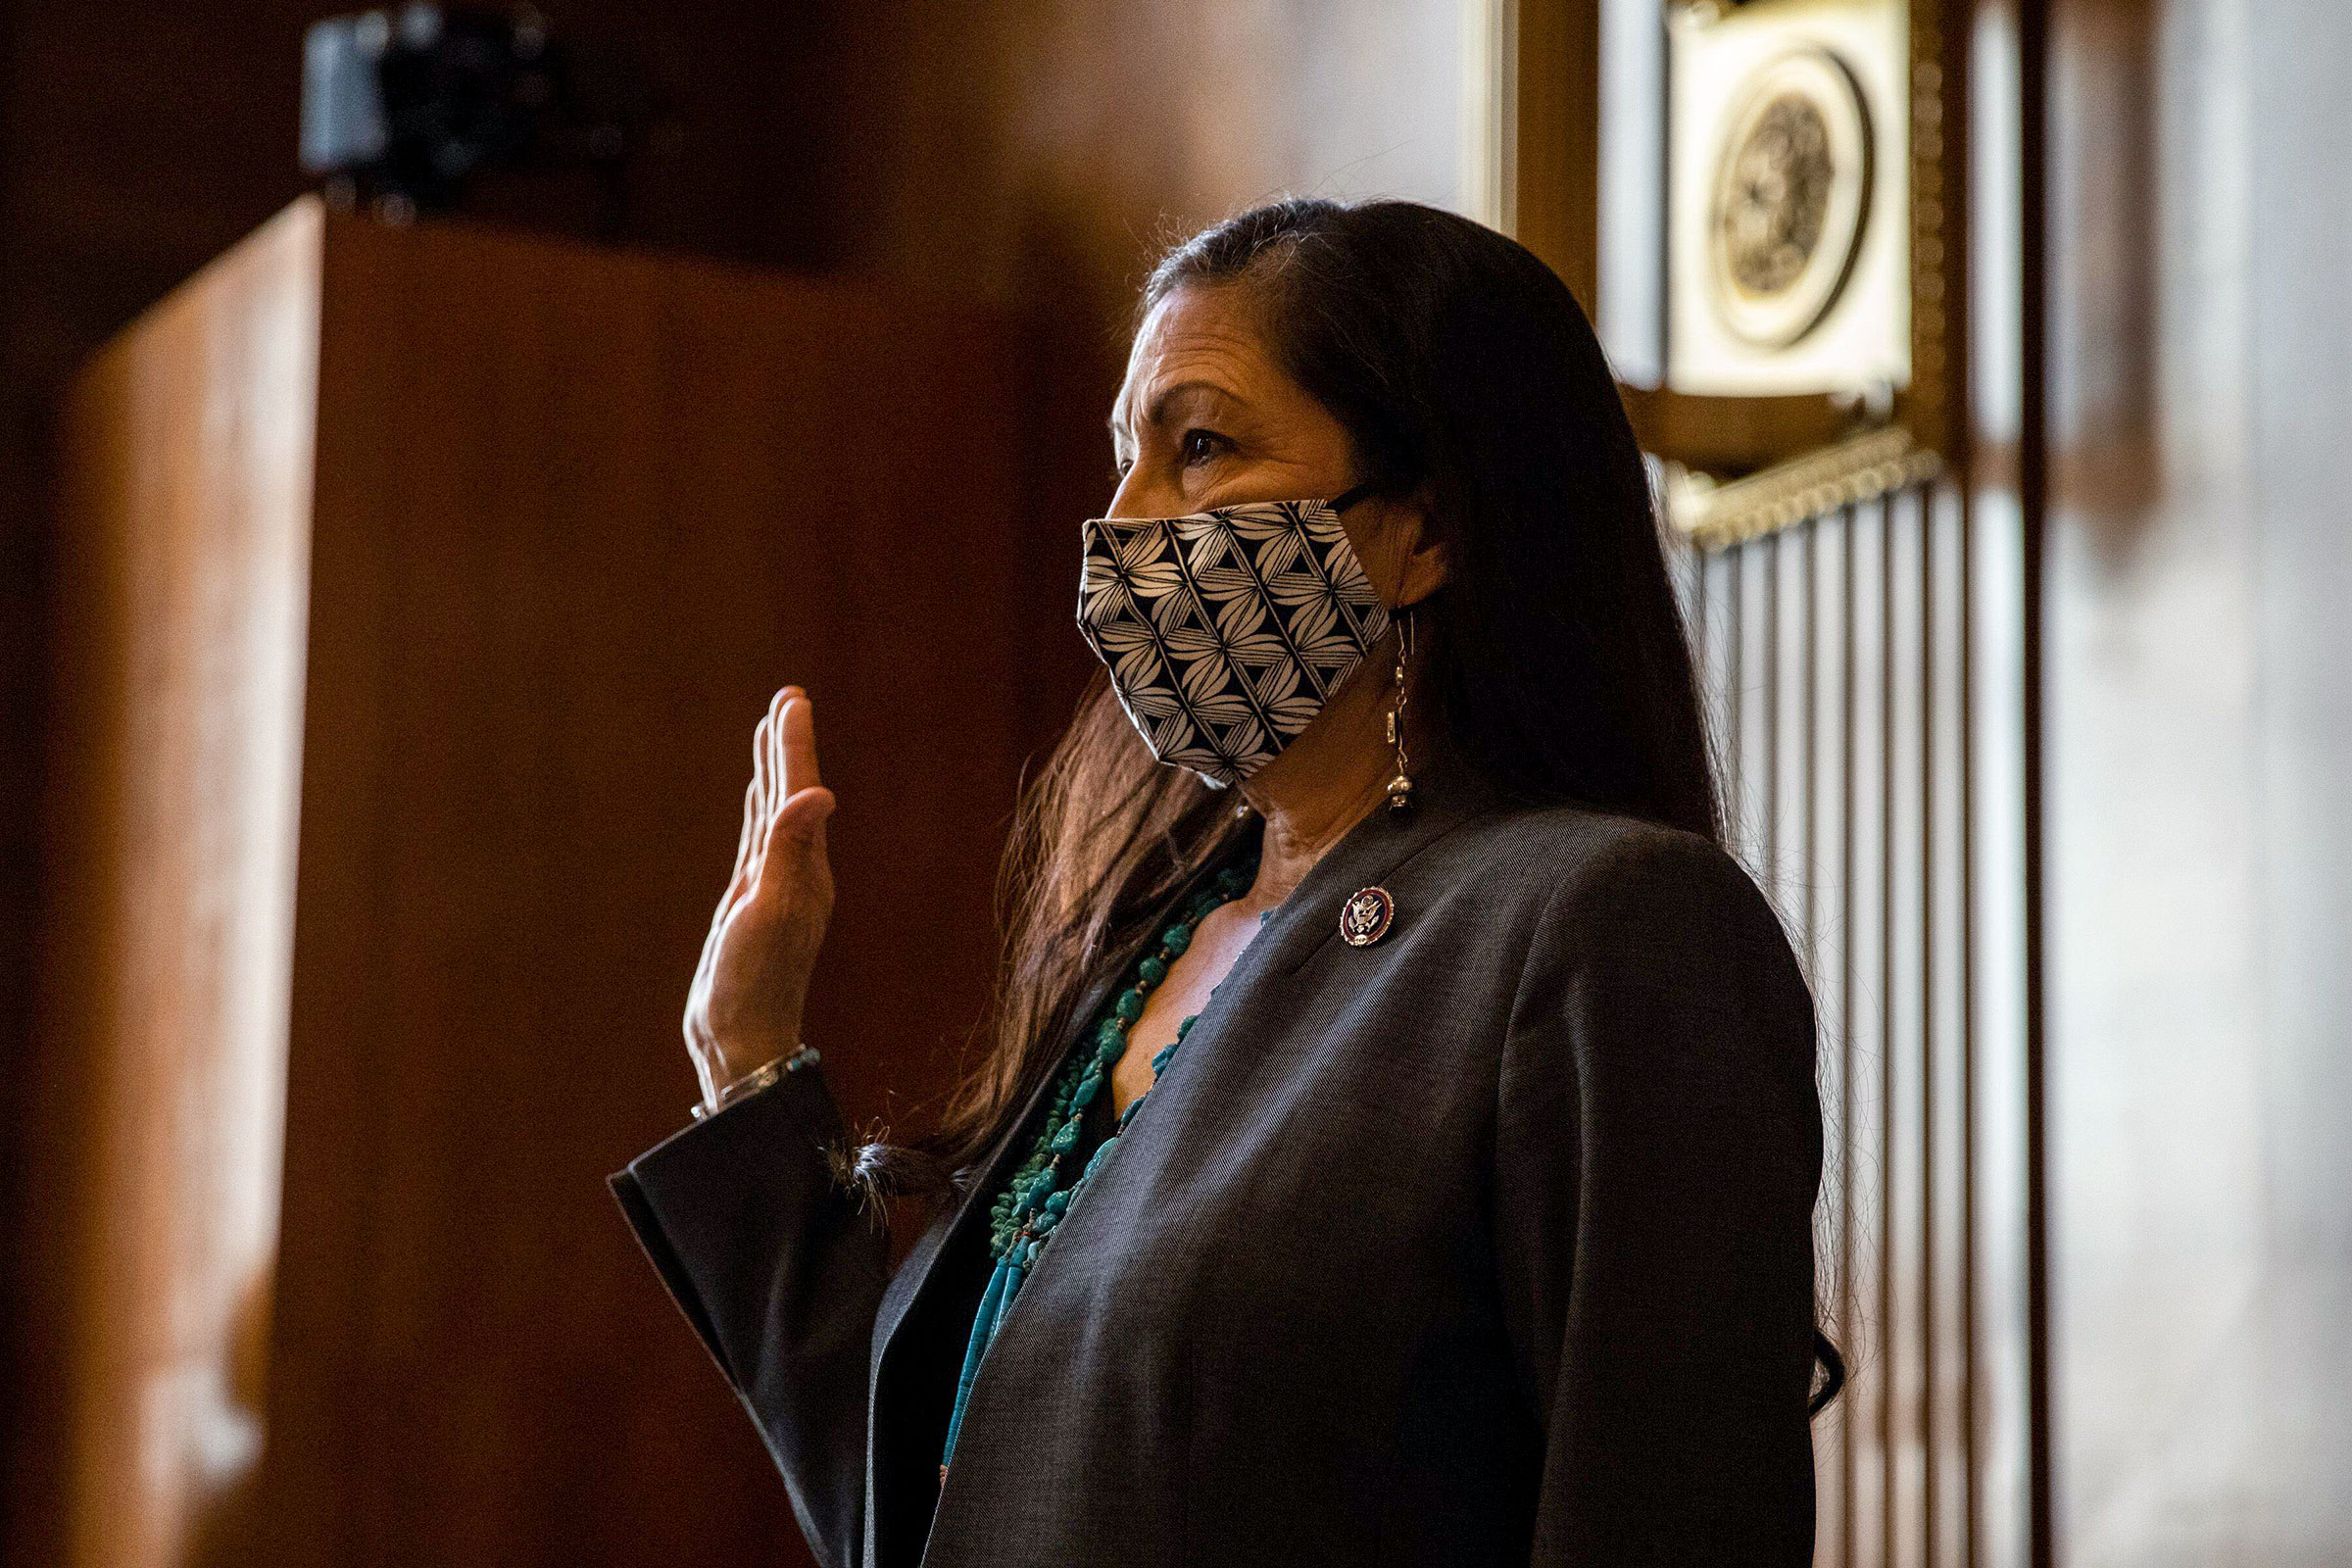 Congresswoman Deb Haaland is sworn in during a Senate Committee on Energy and Natural Resources hearing on her nomination to be Interior Secretary in Washington, February 23, 2021. Graeme Jennings/Pool/Alamy